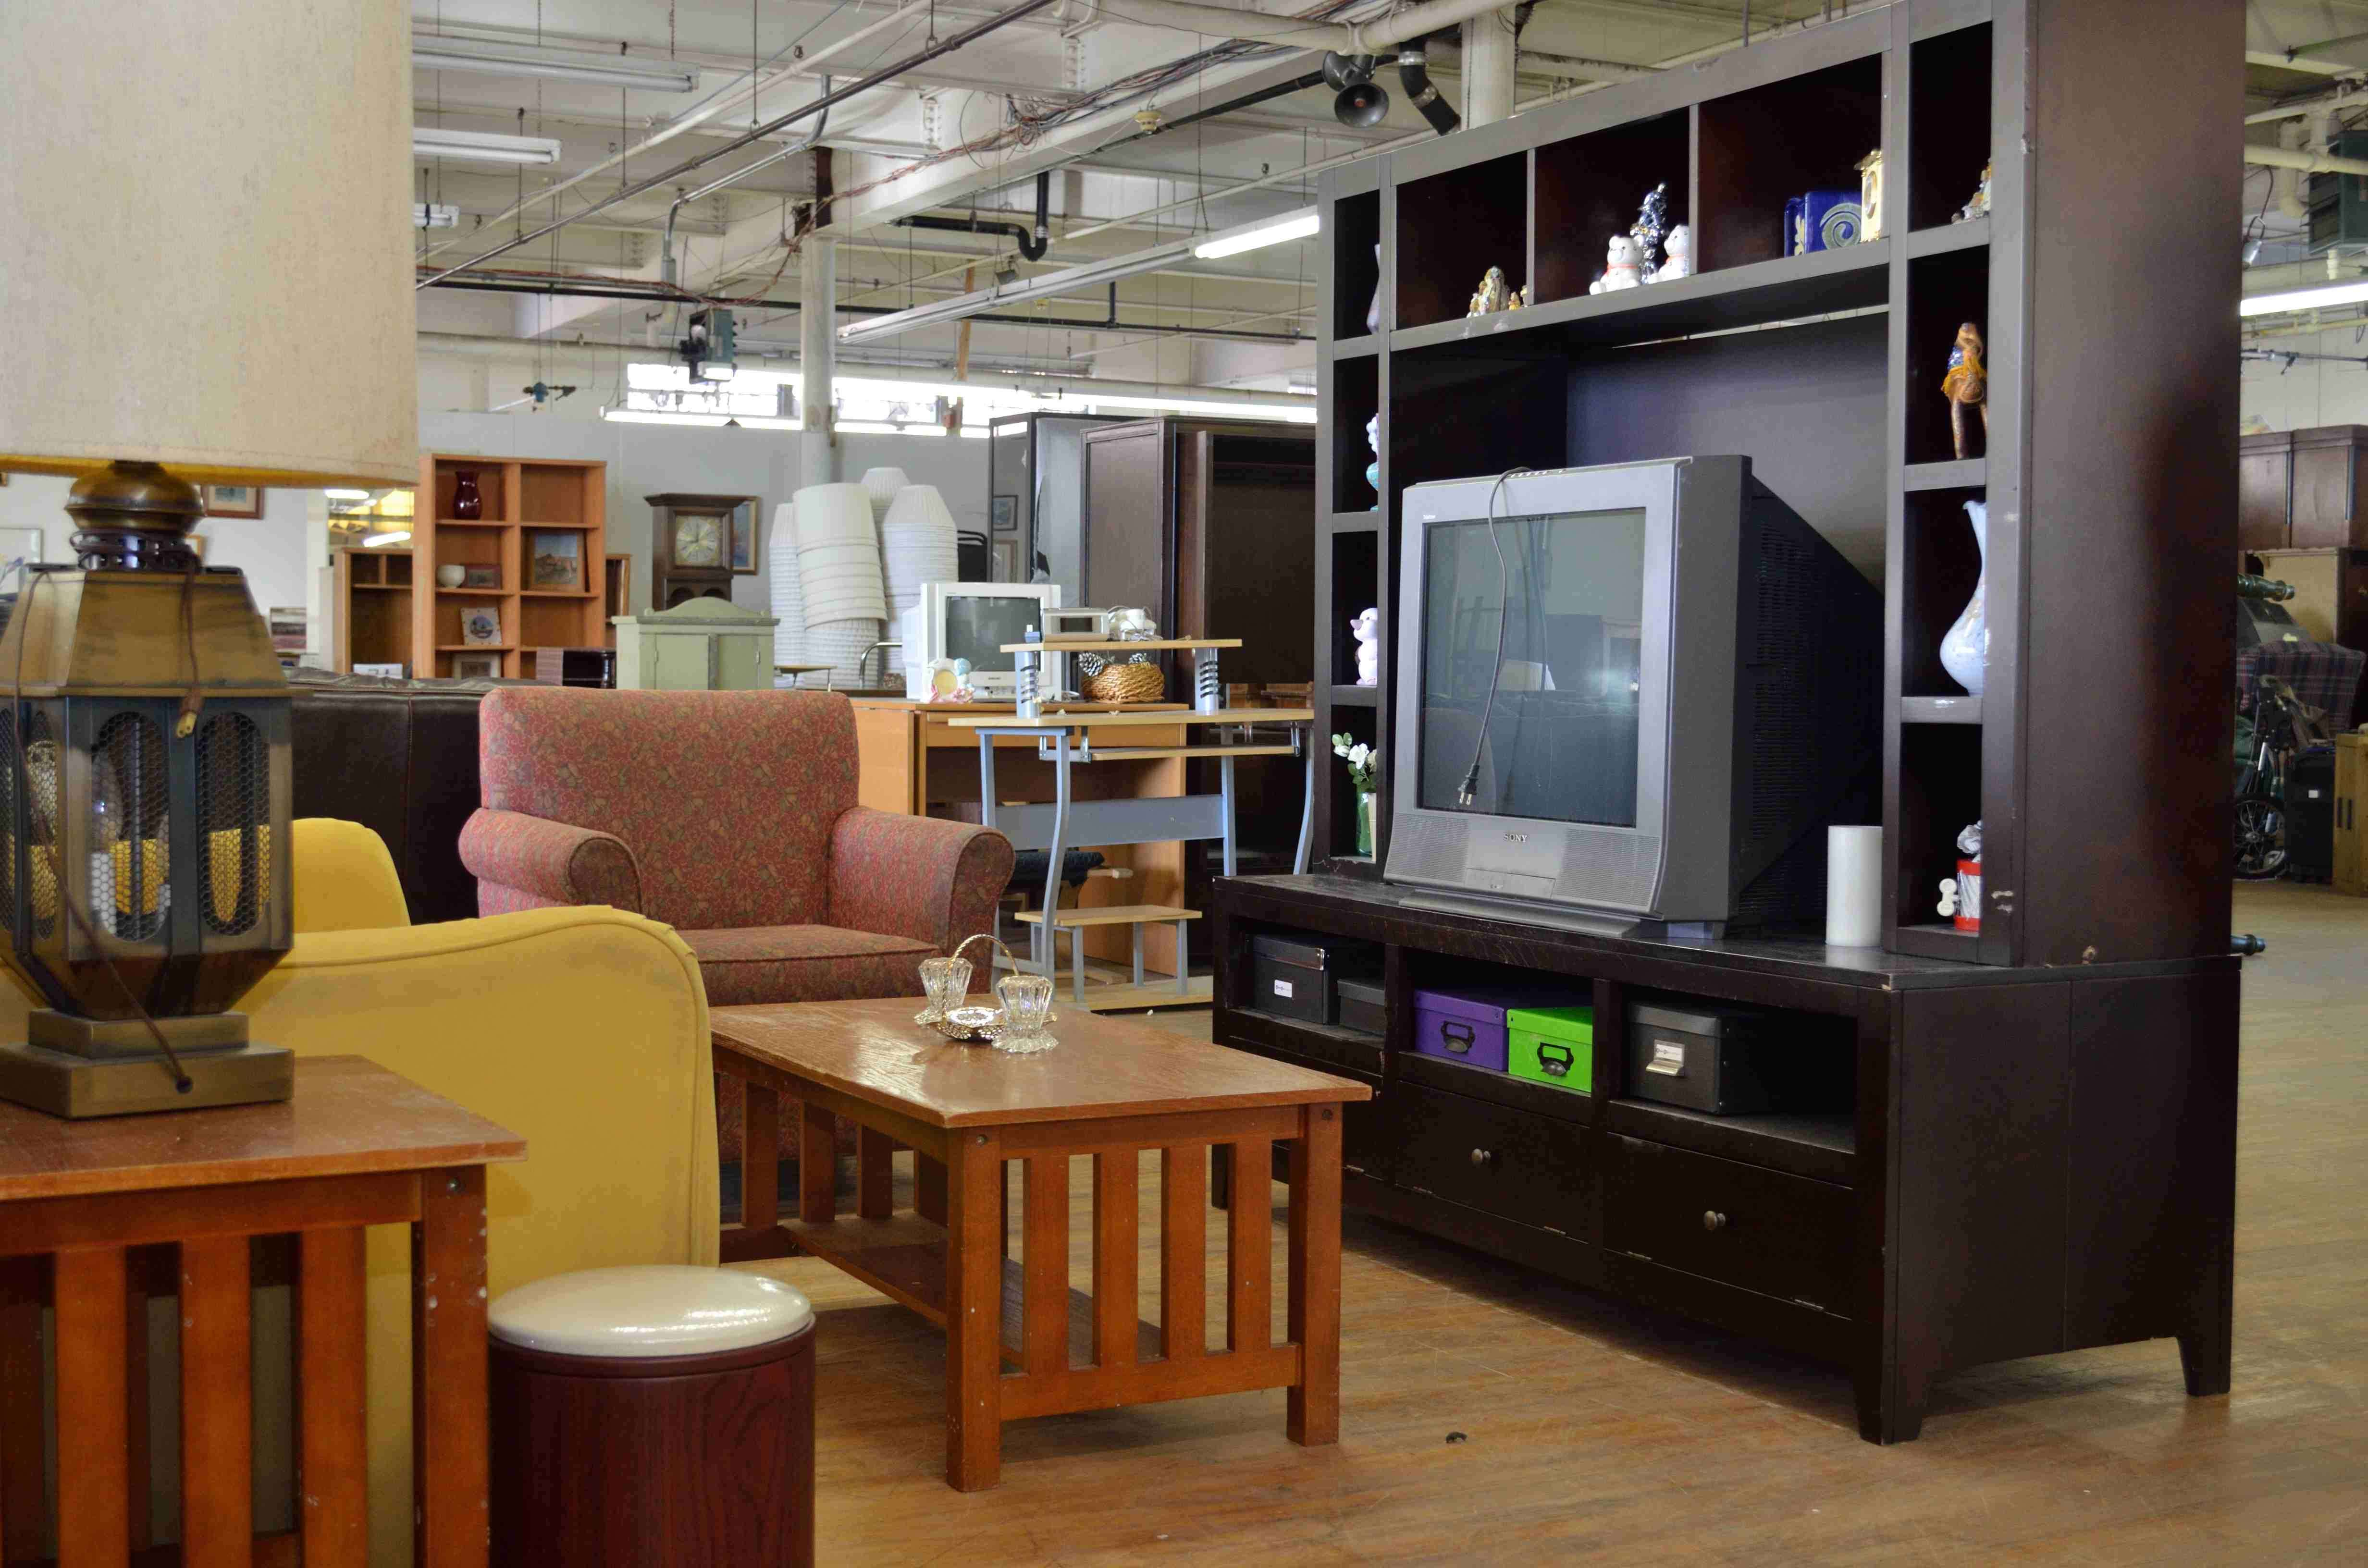 mass coalition for the homeless furniture bank celebrates 30 years reenat sinay. Black Bedroom Furniture Sets. Home Design Ideas